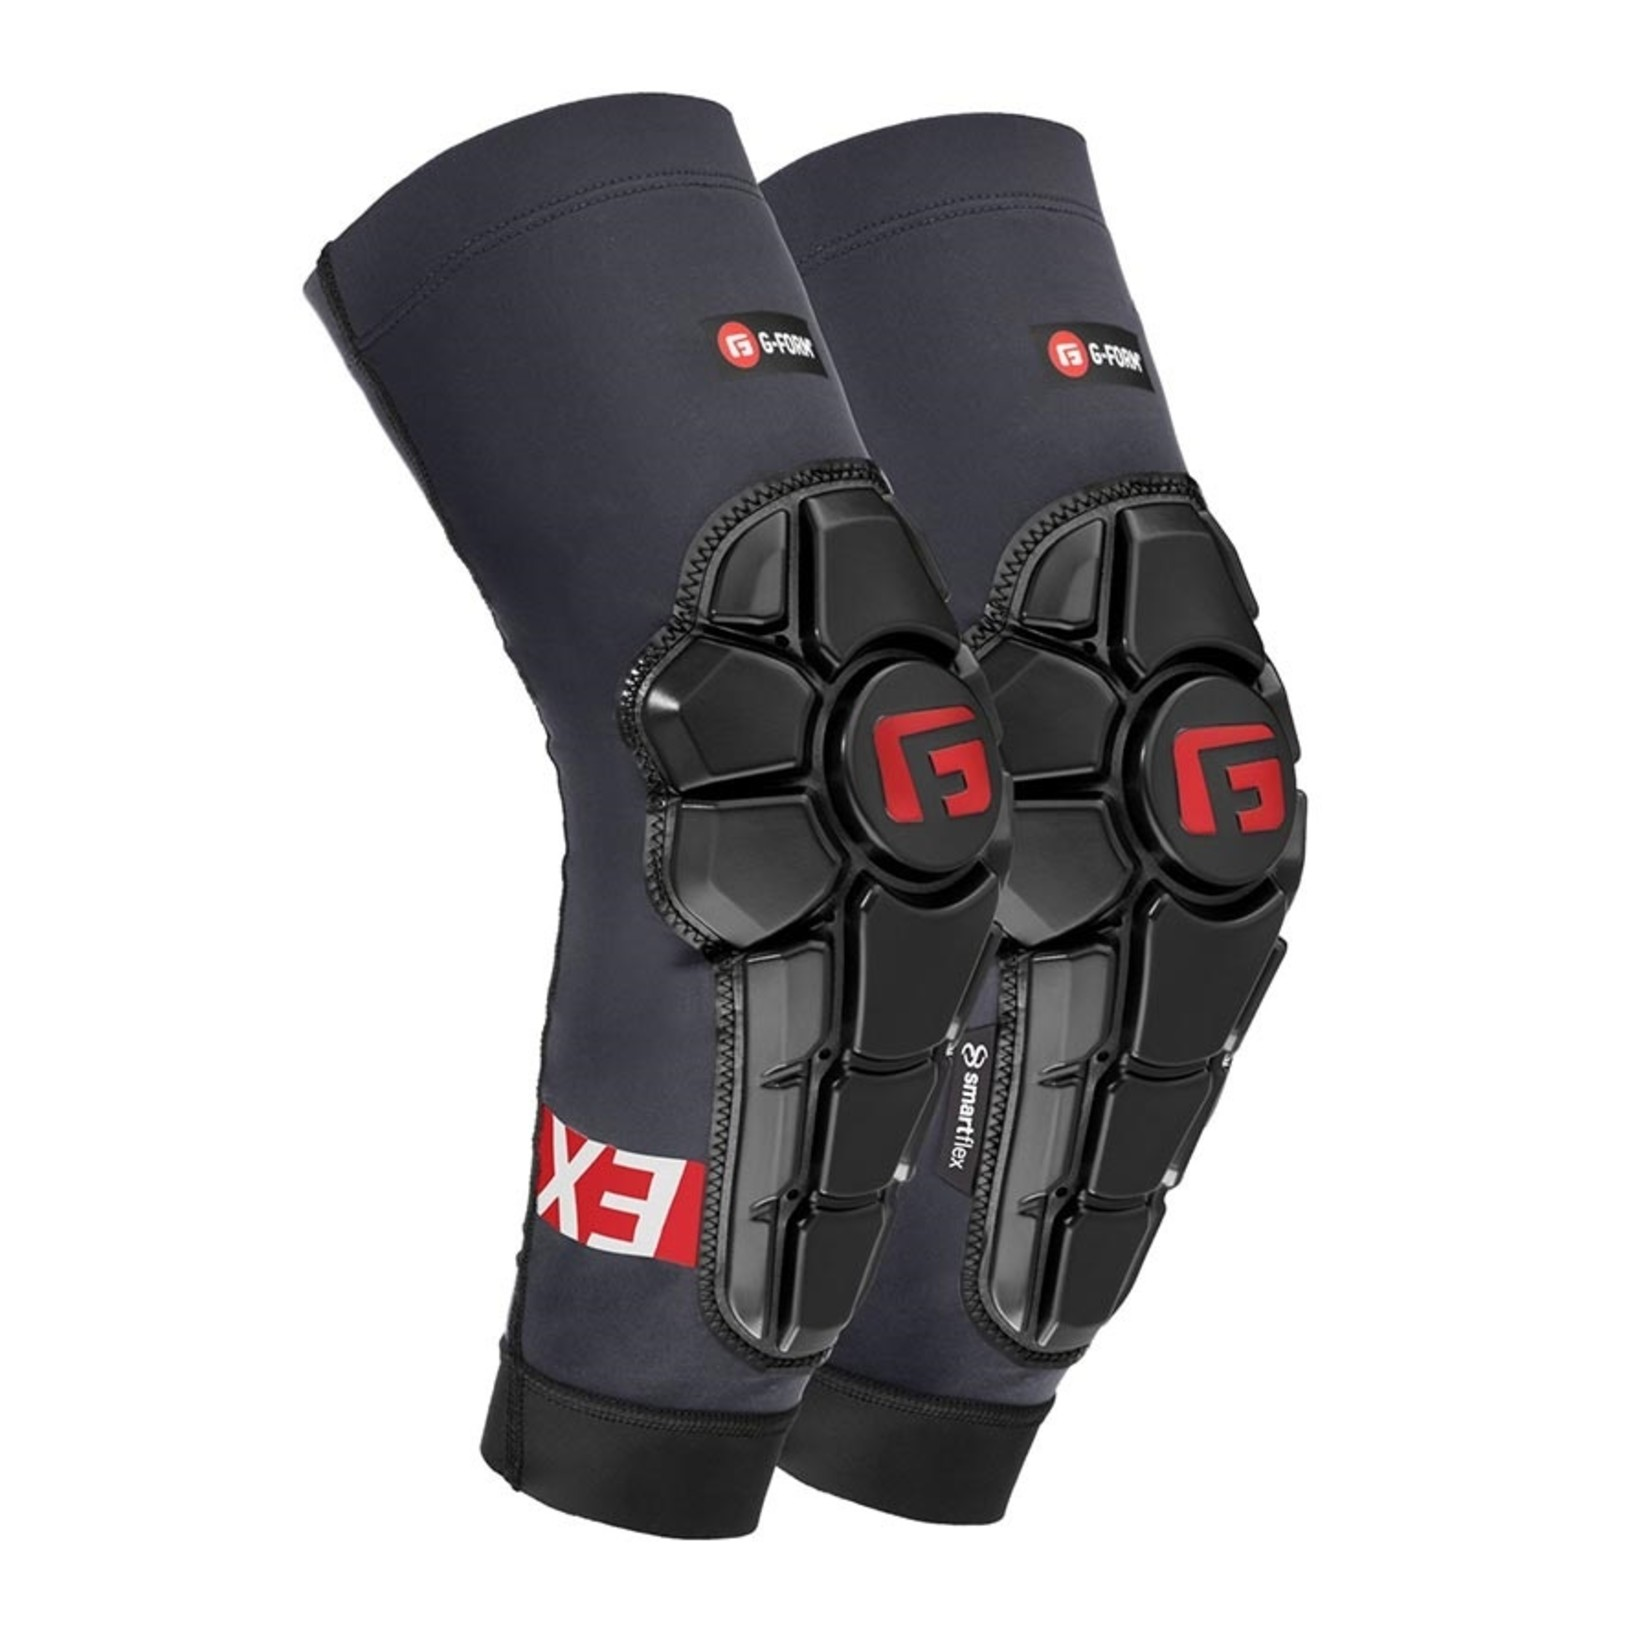 G-Form G-Form, Pro-X3, Elbow/Forearm Guard, Gray, L, Pair